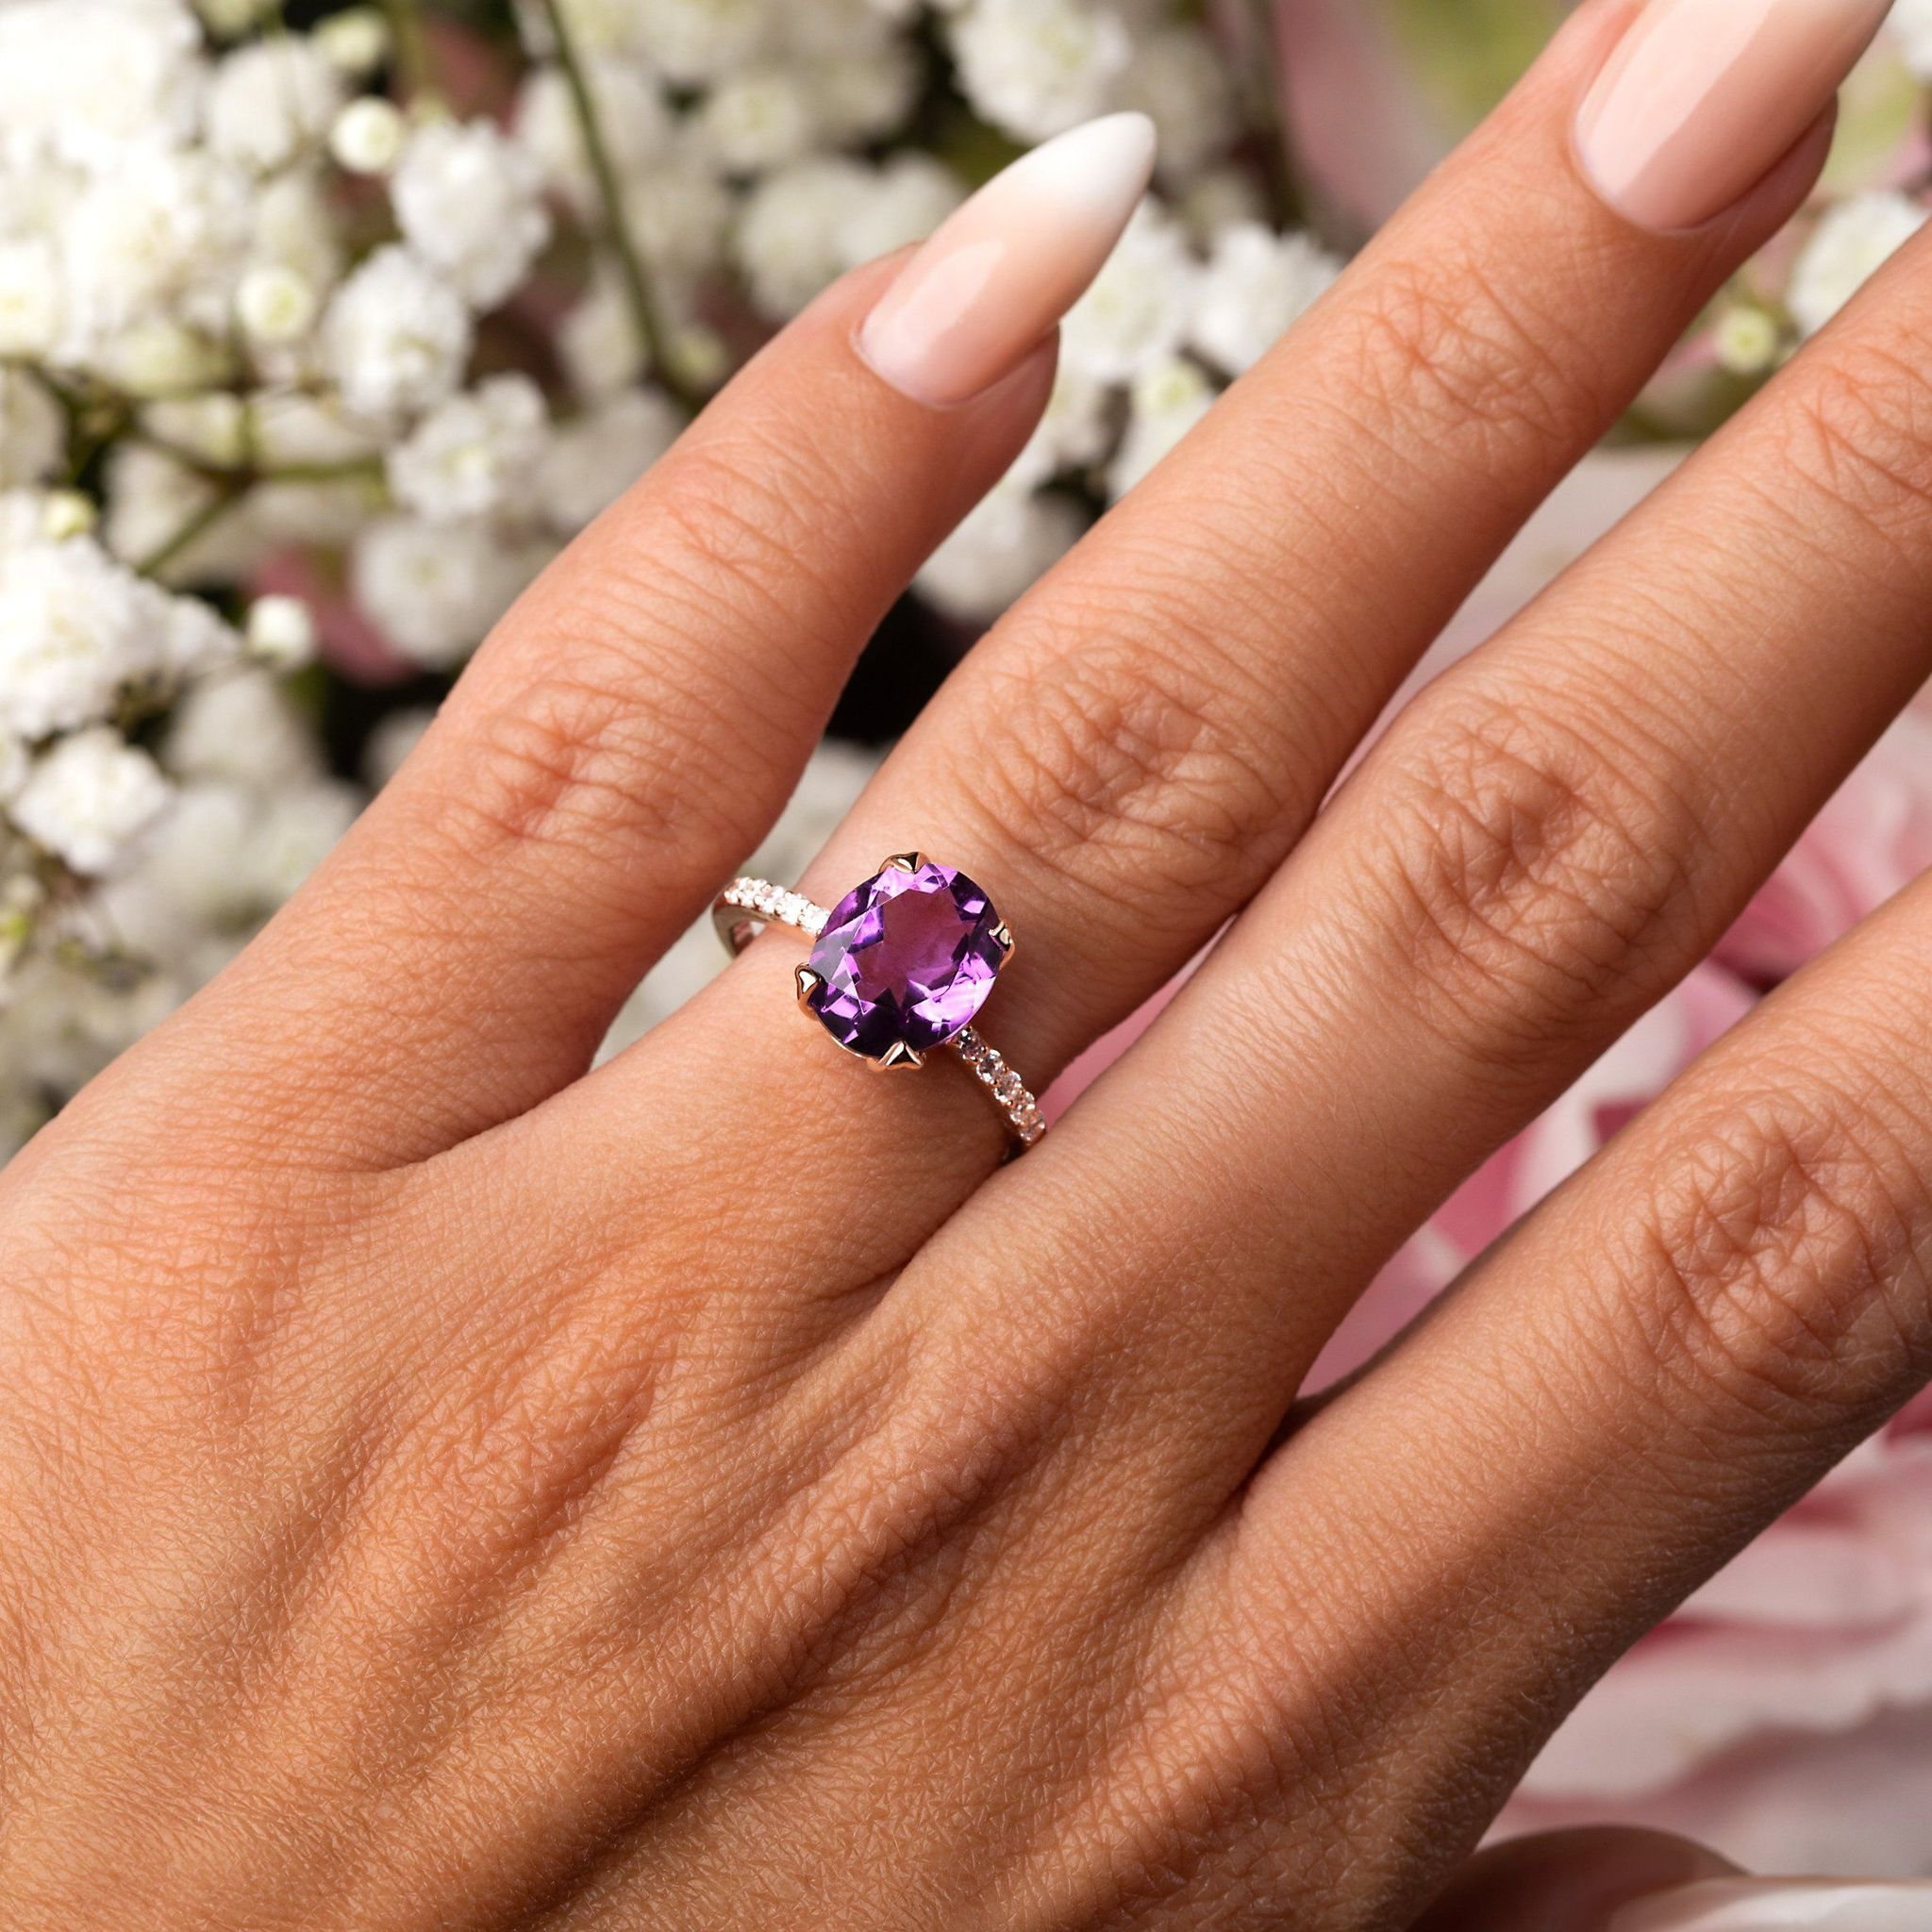 Details about  /925 Sterling Silver Amethyst and White Topaz Gemstone Halo Ring For Wedding